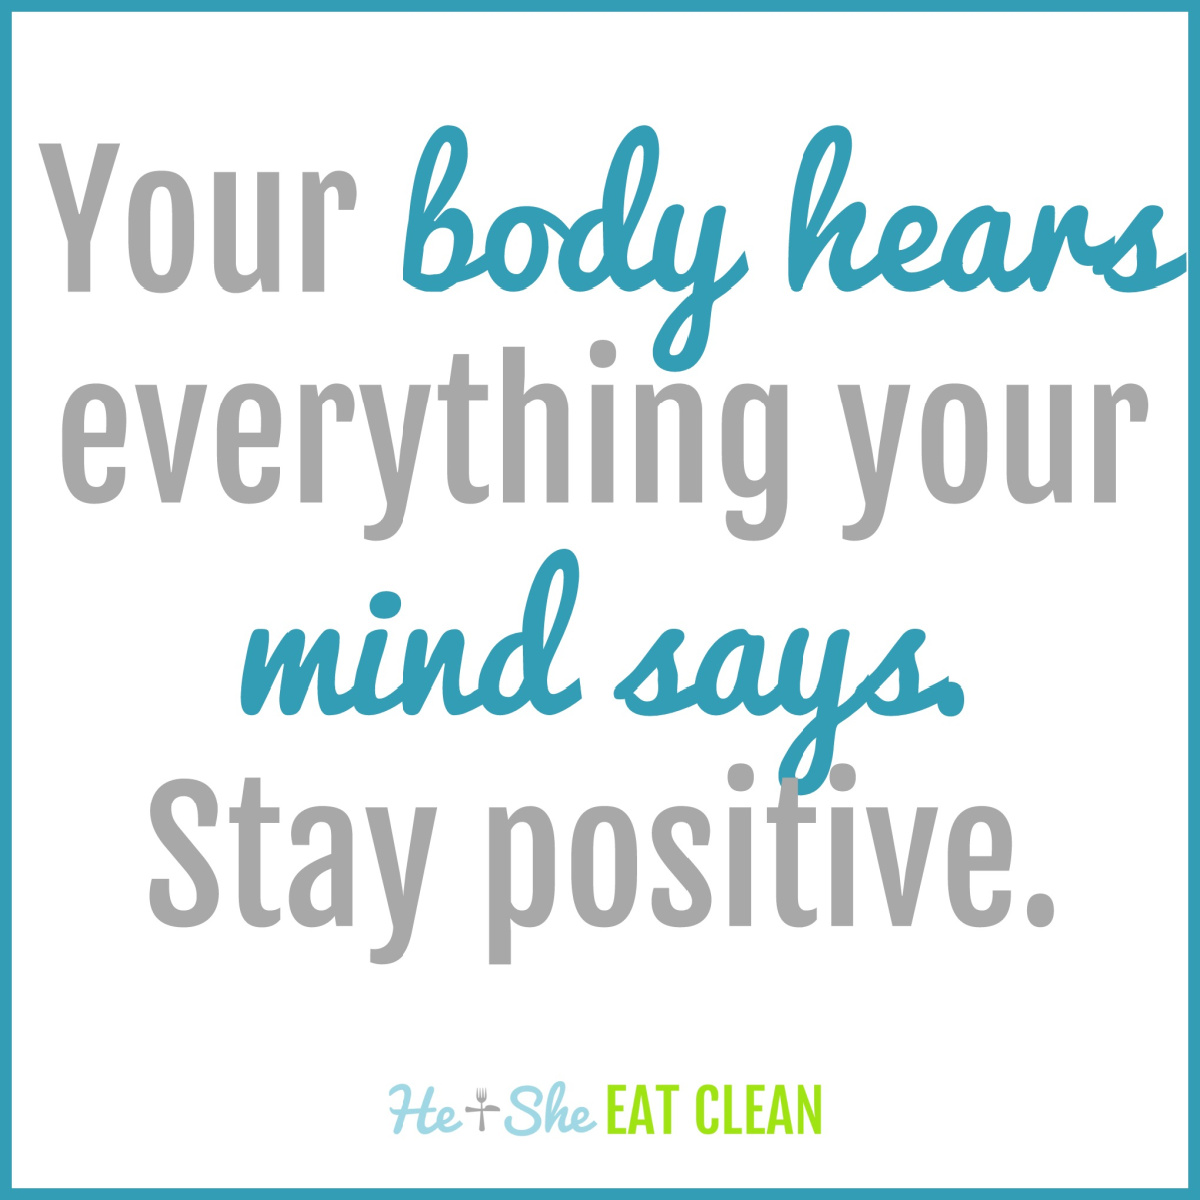 text reads Your body hears everything your mind says. Stay positive.